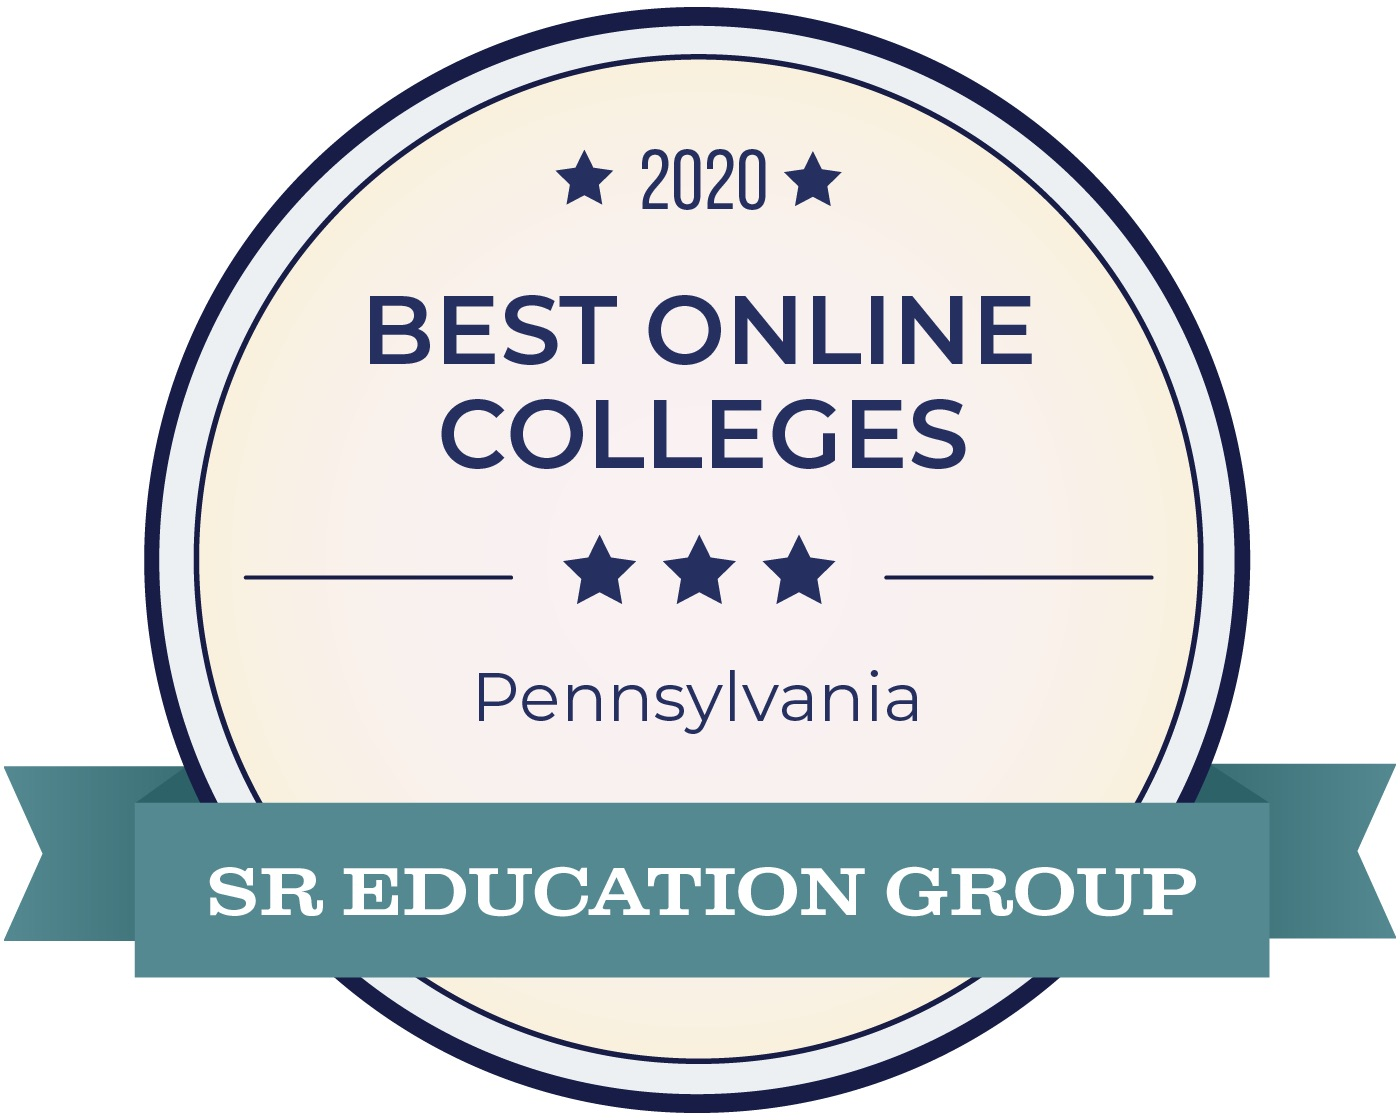 SR Education Group Award Badge for Cabrini Ranking Among 2020 Best Online Bachelor's Degrees in PA